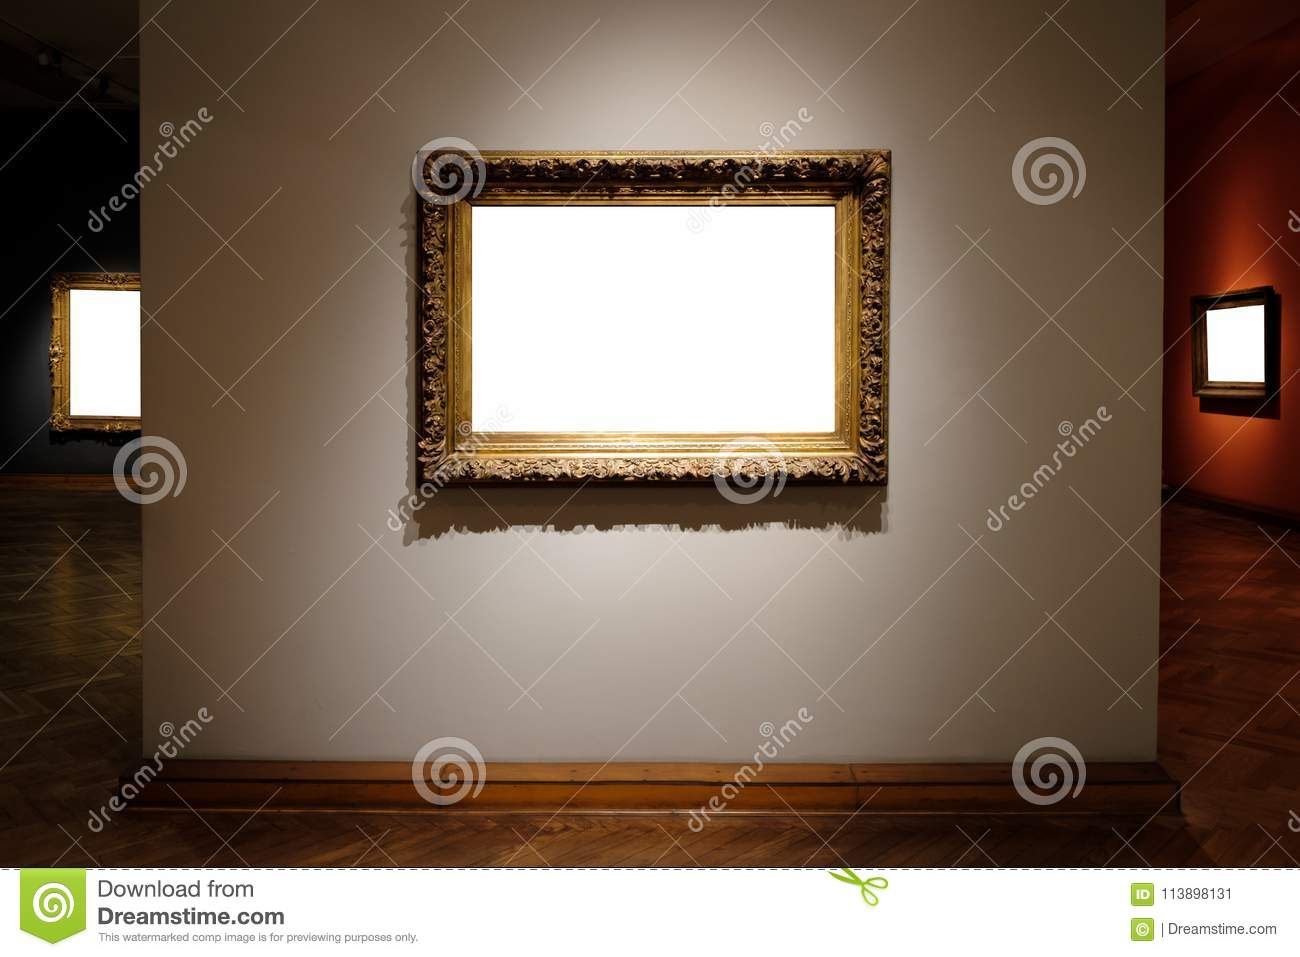 Ornate Picture Frames Art Gallery Museum Exhibit Blank White ...